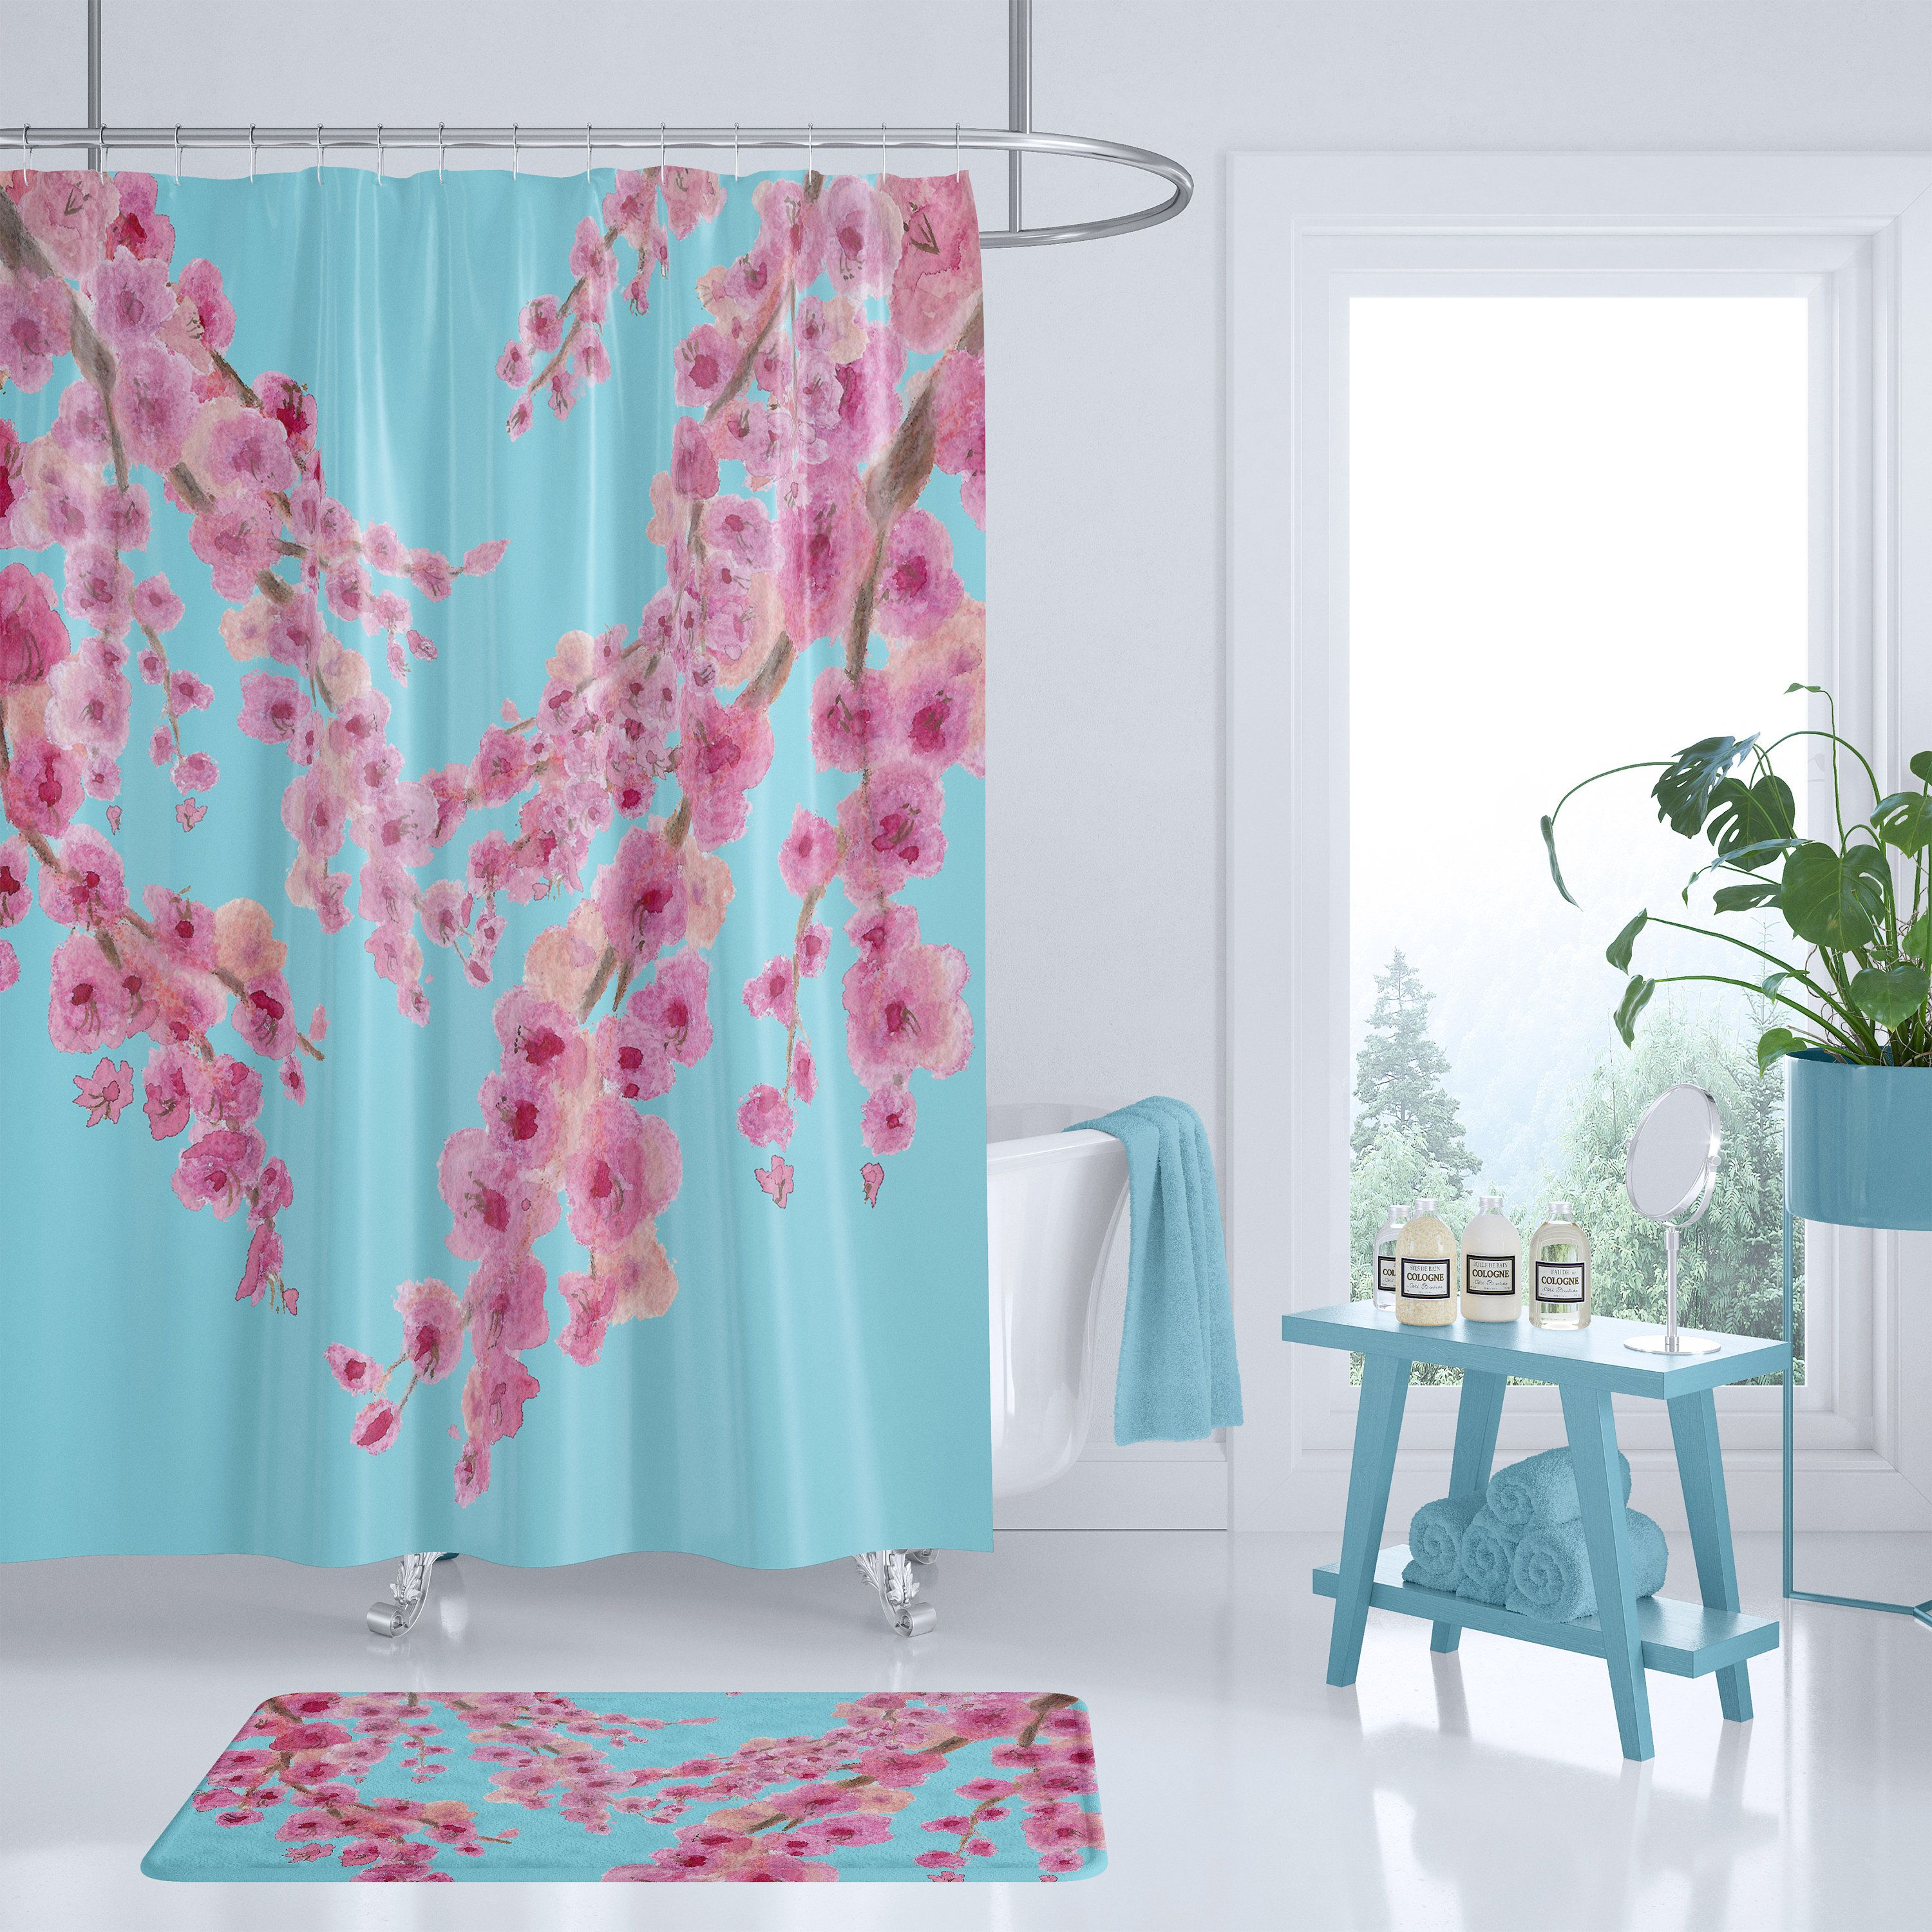 Cherry Blossom Floral Shower Curtain Pink And Blue Fabric Beautiful Bathroom Makeove Floral Shower Curtains Blue Shower Curtains Bathroom Shower Curtains